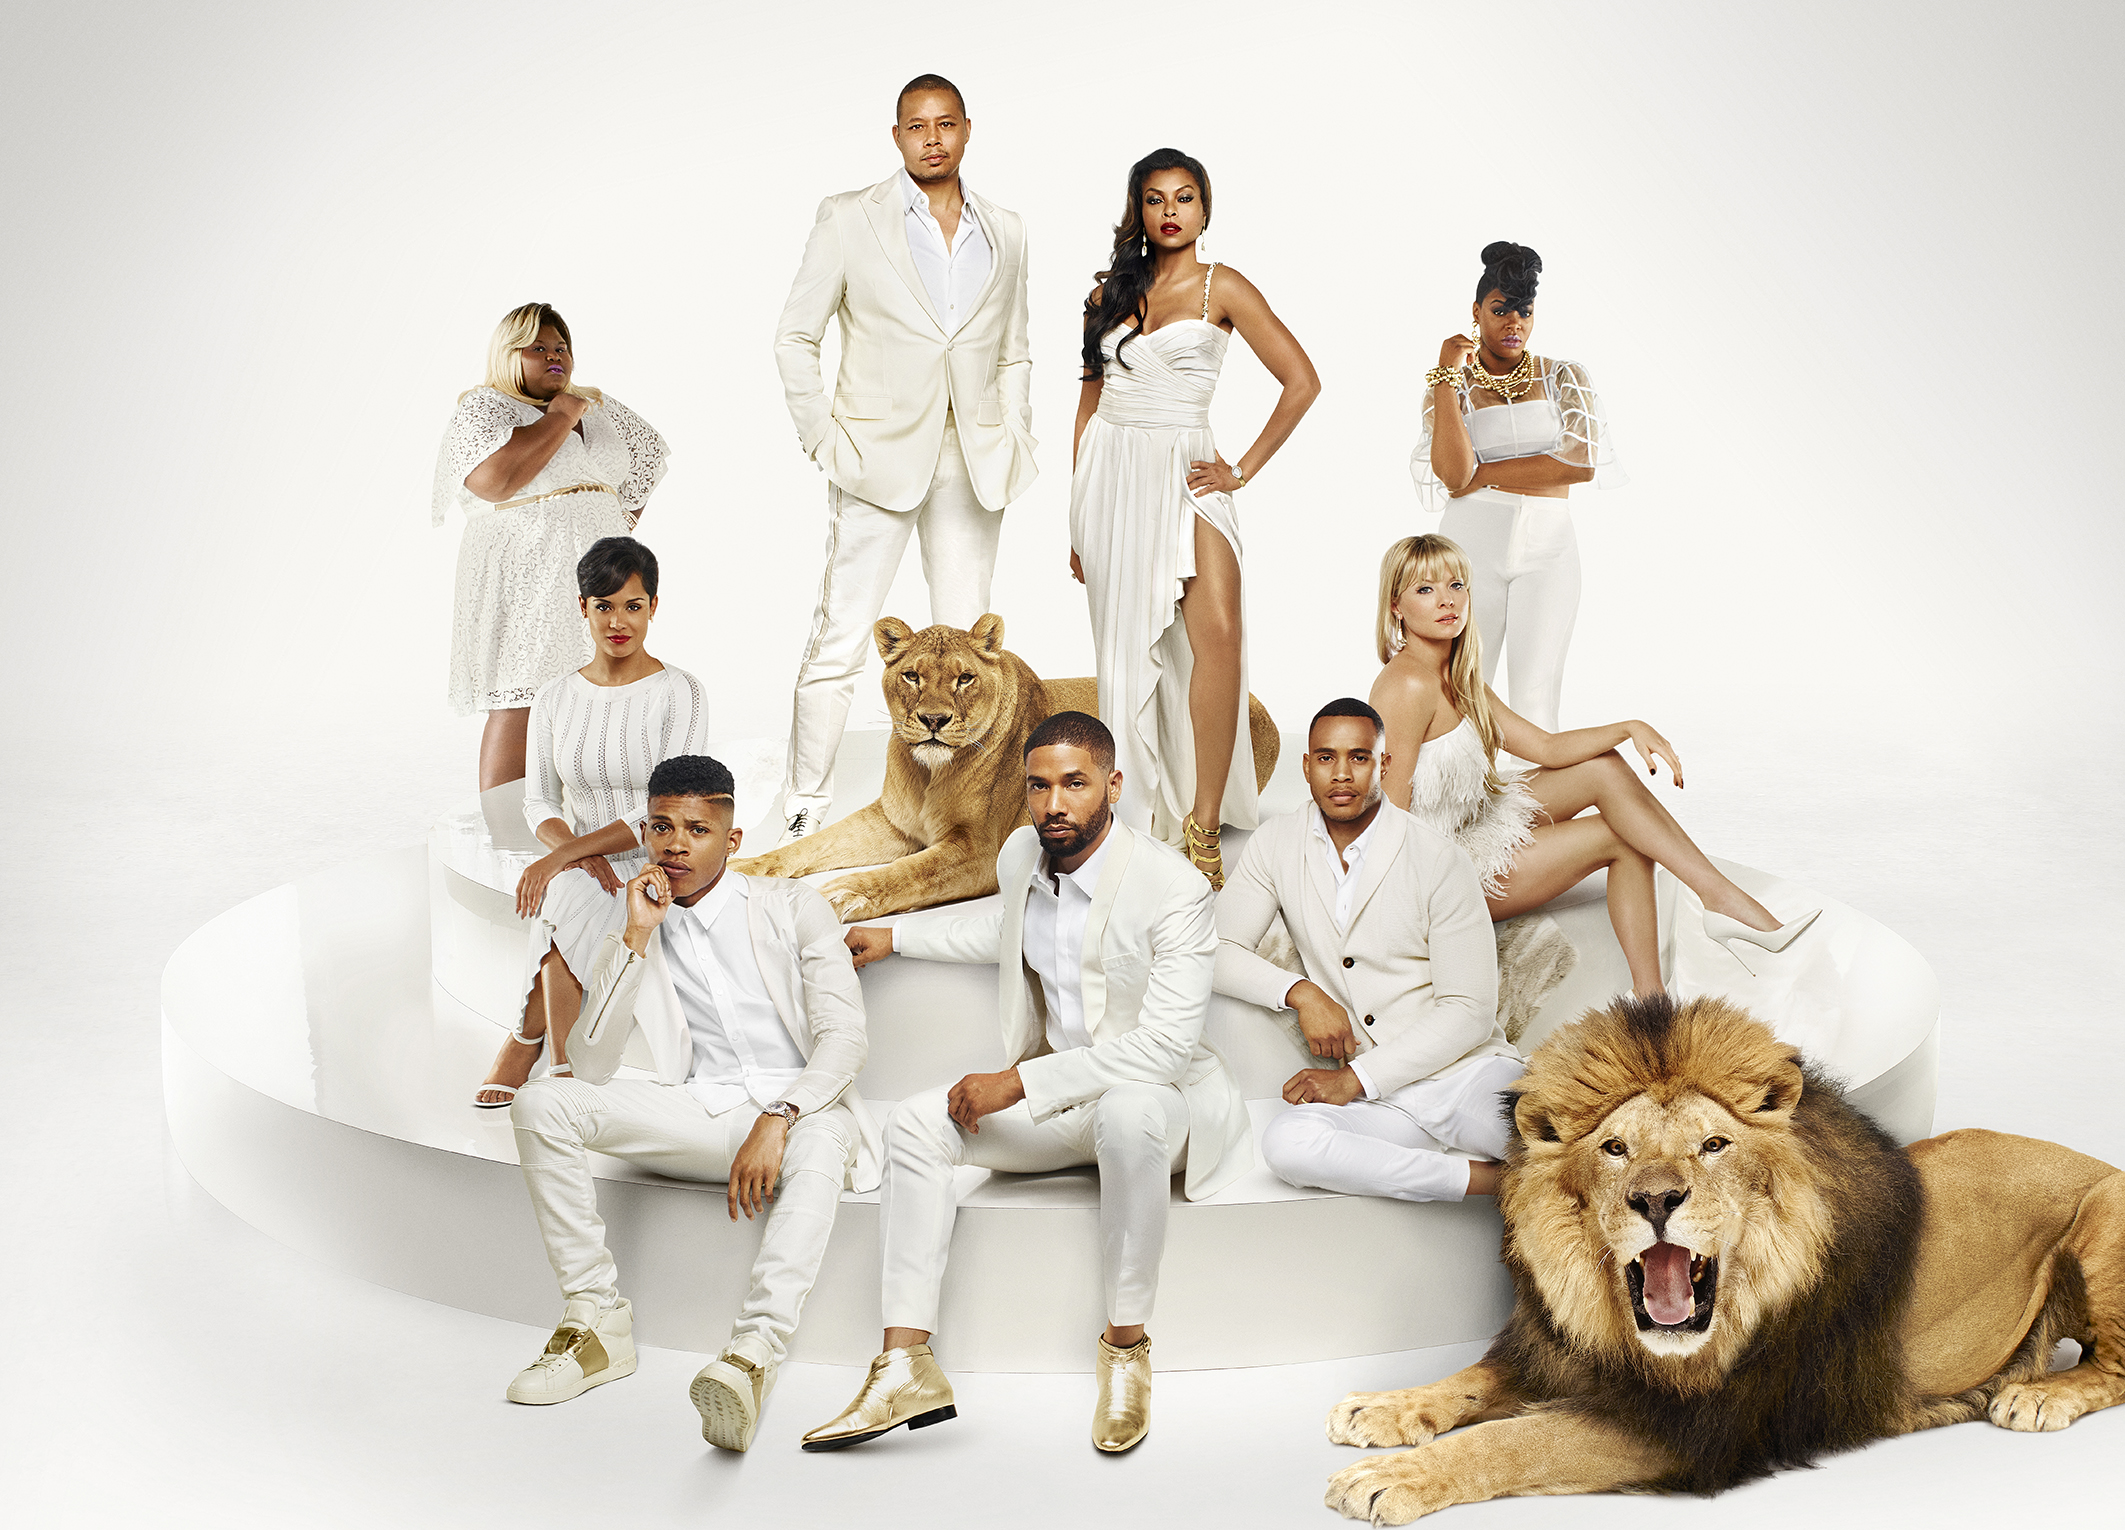 EMPIRE: Cast Pictured L-R: (Bottom Row) Bryshere Gray as Hakeem Lyon, Jussie Smollett as Jamal Lyon, Trai Byers as Andre Lyon (Middle Row) Grace Gealey as Anika, Kaitlin Doubleday as Rhonda Lyon (Back Row) Gabourey Sidibe as Becky, Terrence Howard as Lucious Lyon, Taraji P. Henson as Cookie Lyon and Ta'Rhonda Jones as Porsha on EMPIRE ©2015 Fox Broadcasting Co. Cr: James Dimmock/FOX.